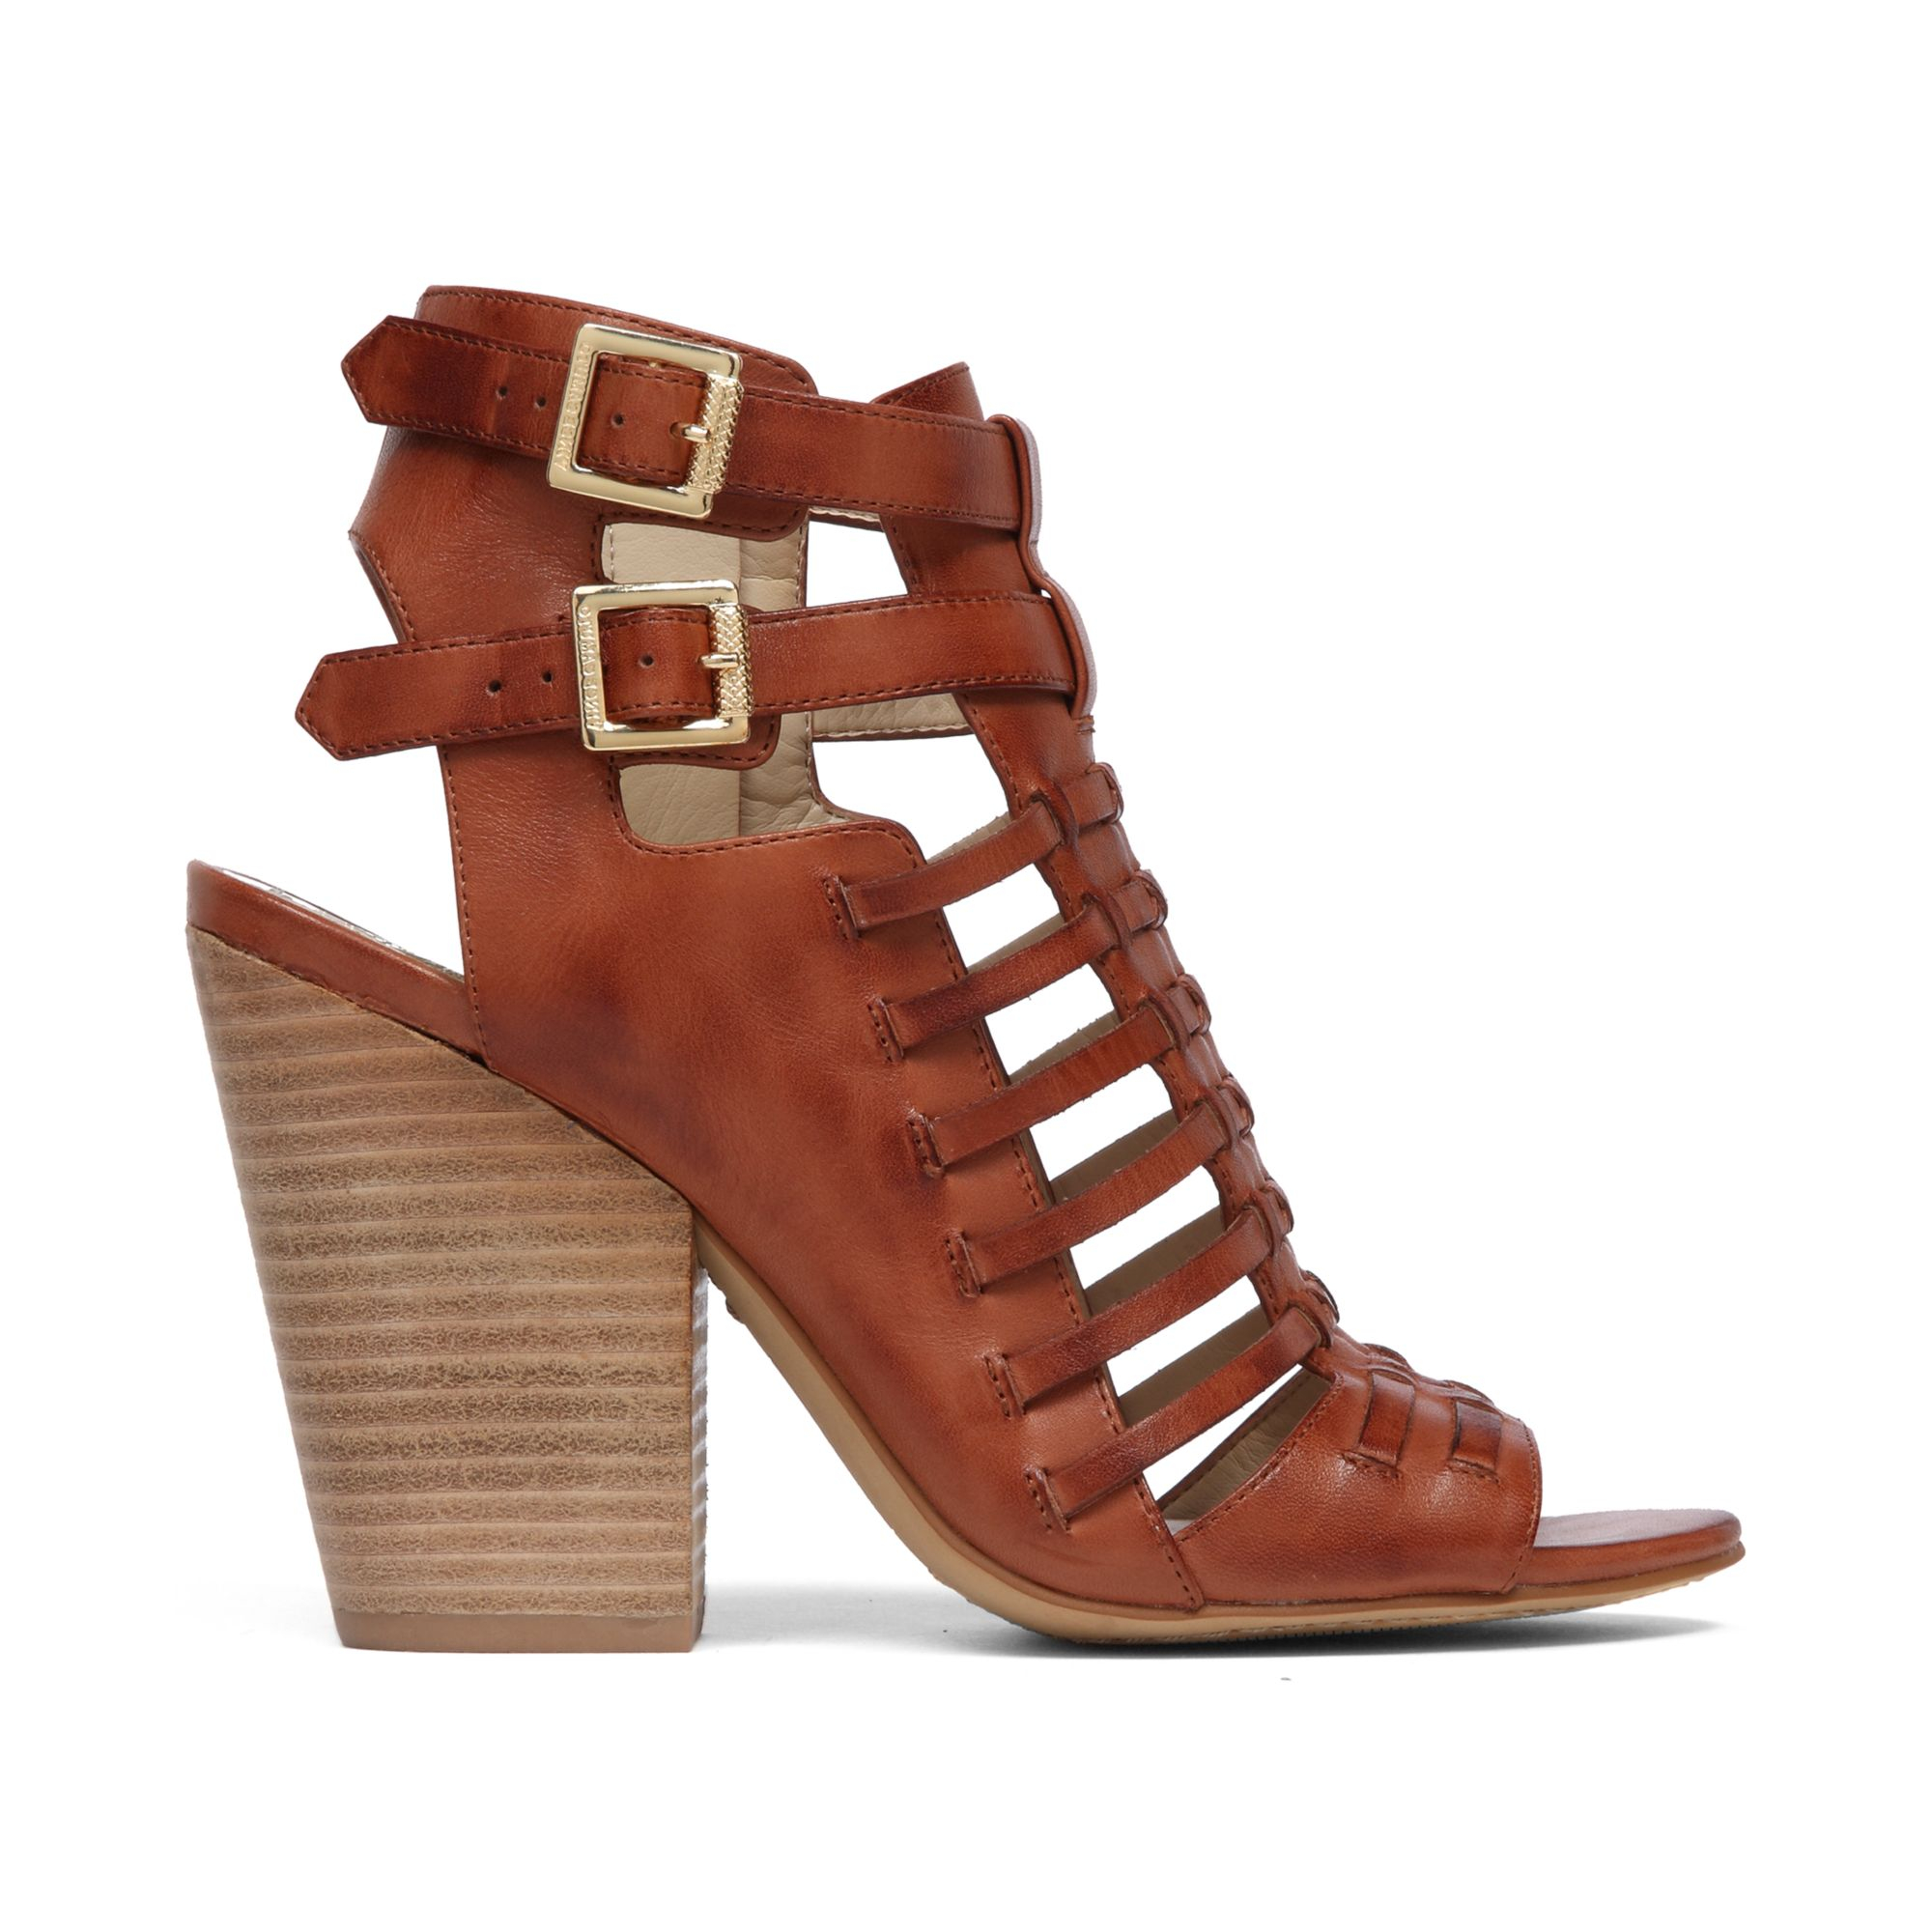 Vince Camuto Medow Gladiator Sandals In Brick Brown Lyst